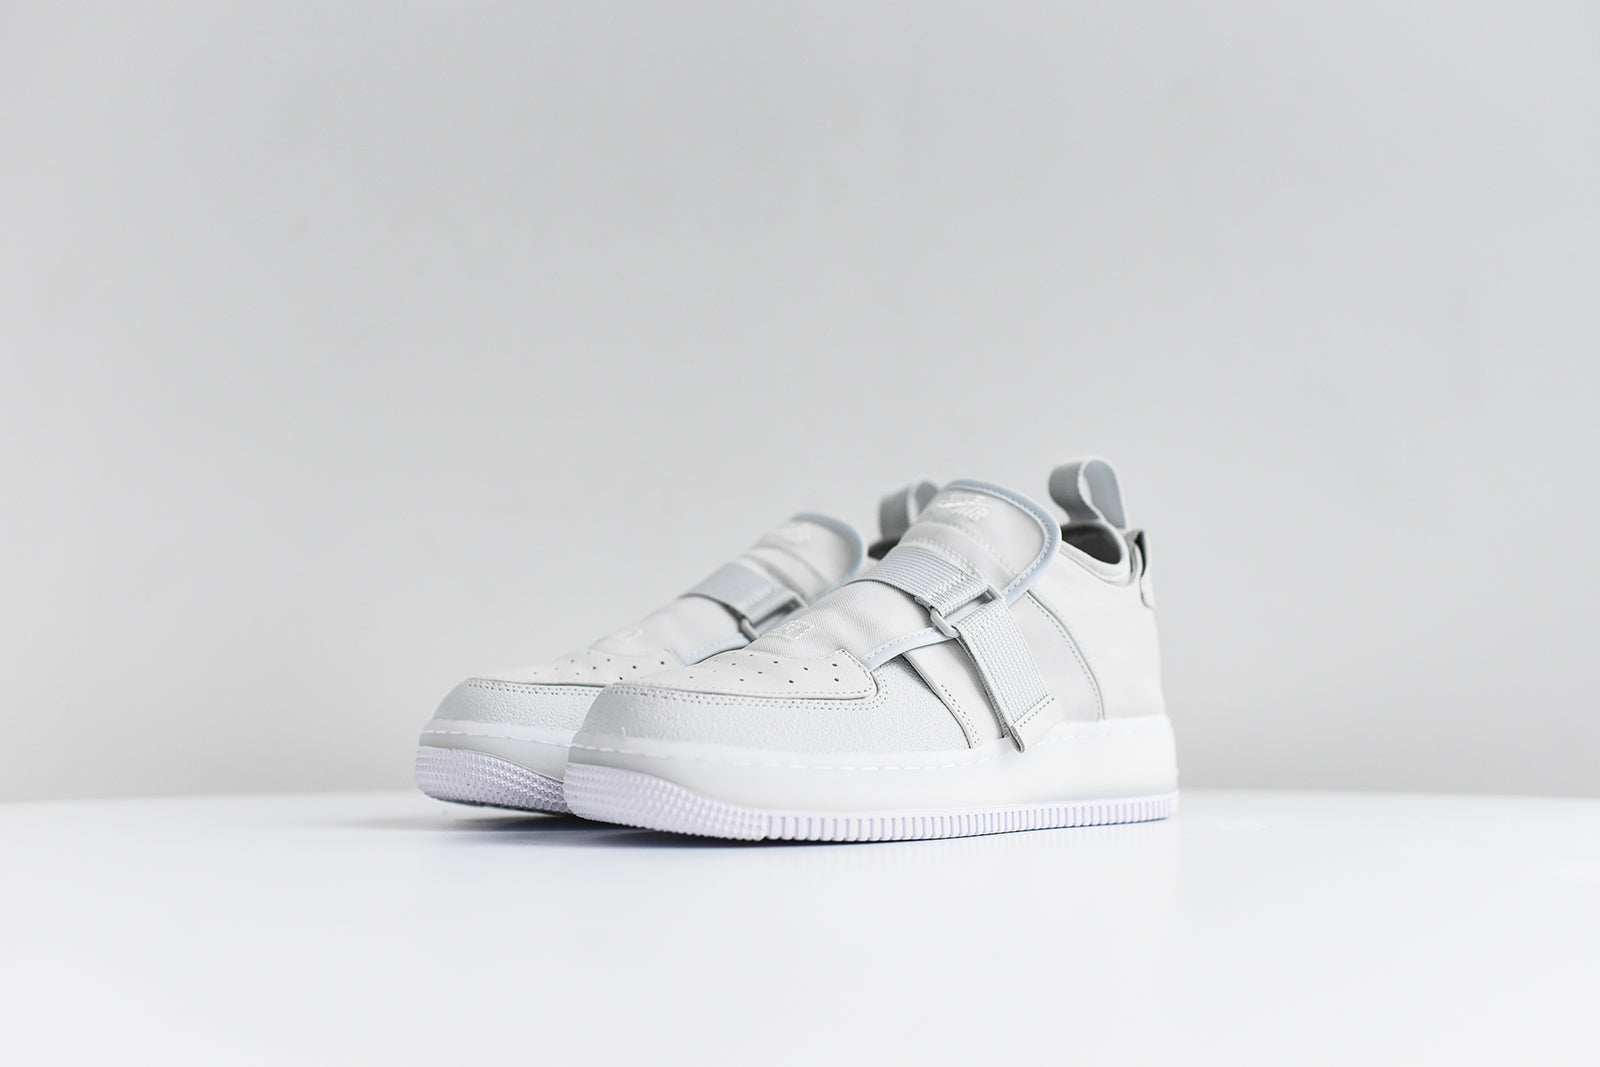 Nike WMNS Air Force 1 Explorer XX - Off White / Light Silver